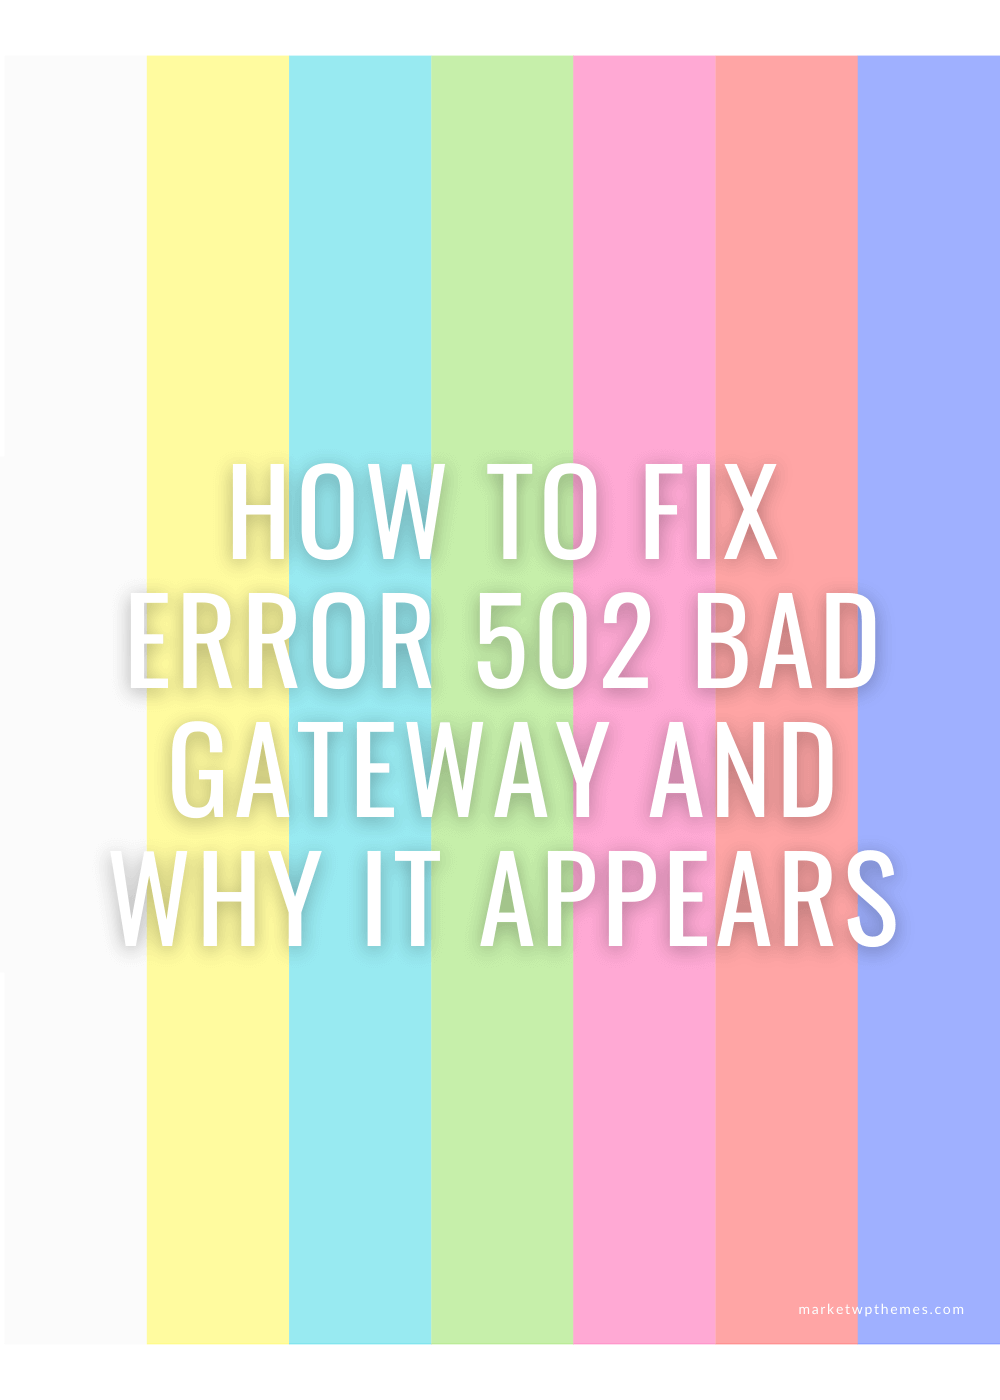 How To Fix Error 502 Bad Gateway And Why It Appears